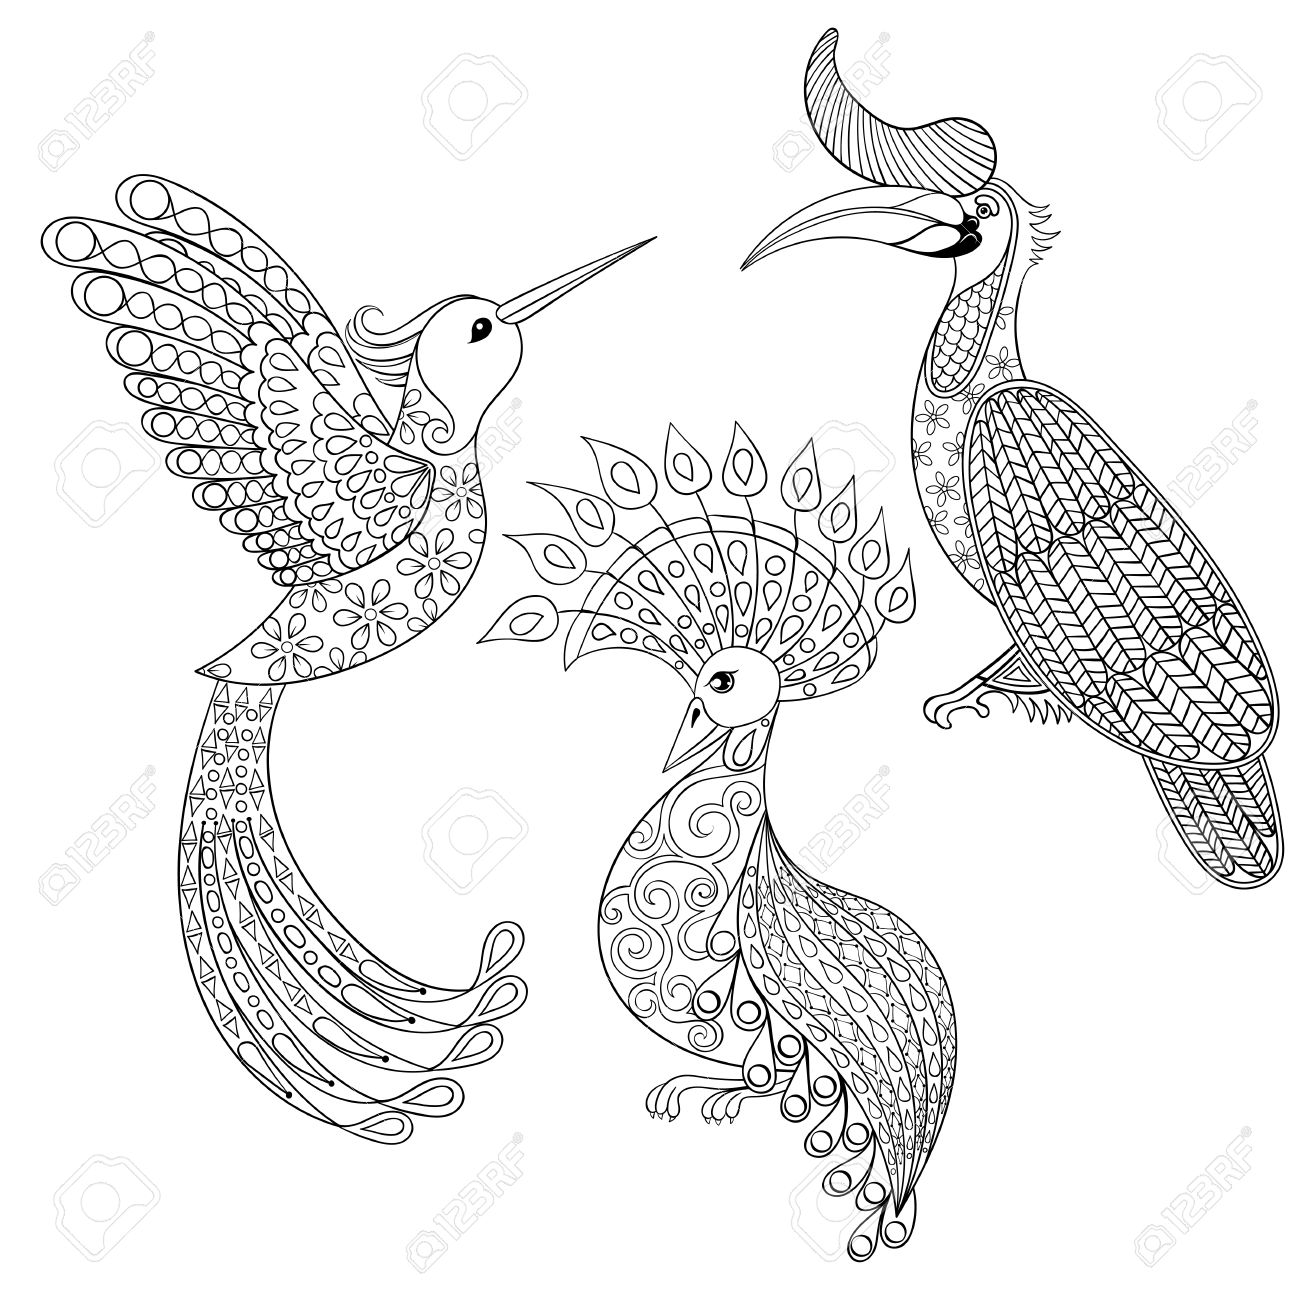 Coloring Page With Bird Rhinoceros Hummingbird And Exotic Zentangle Illustartion For Adult